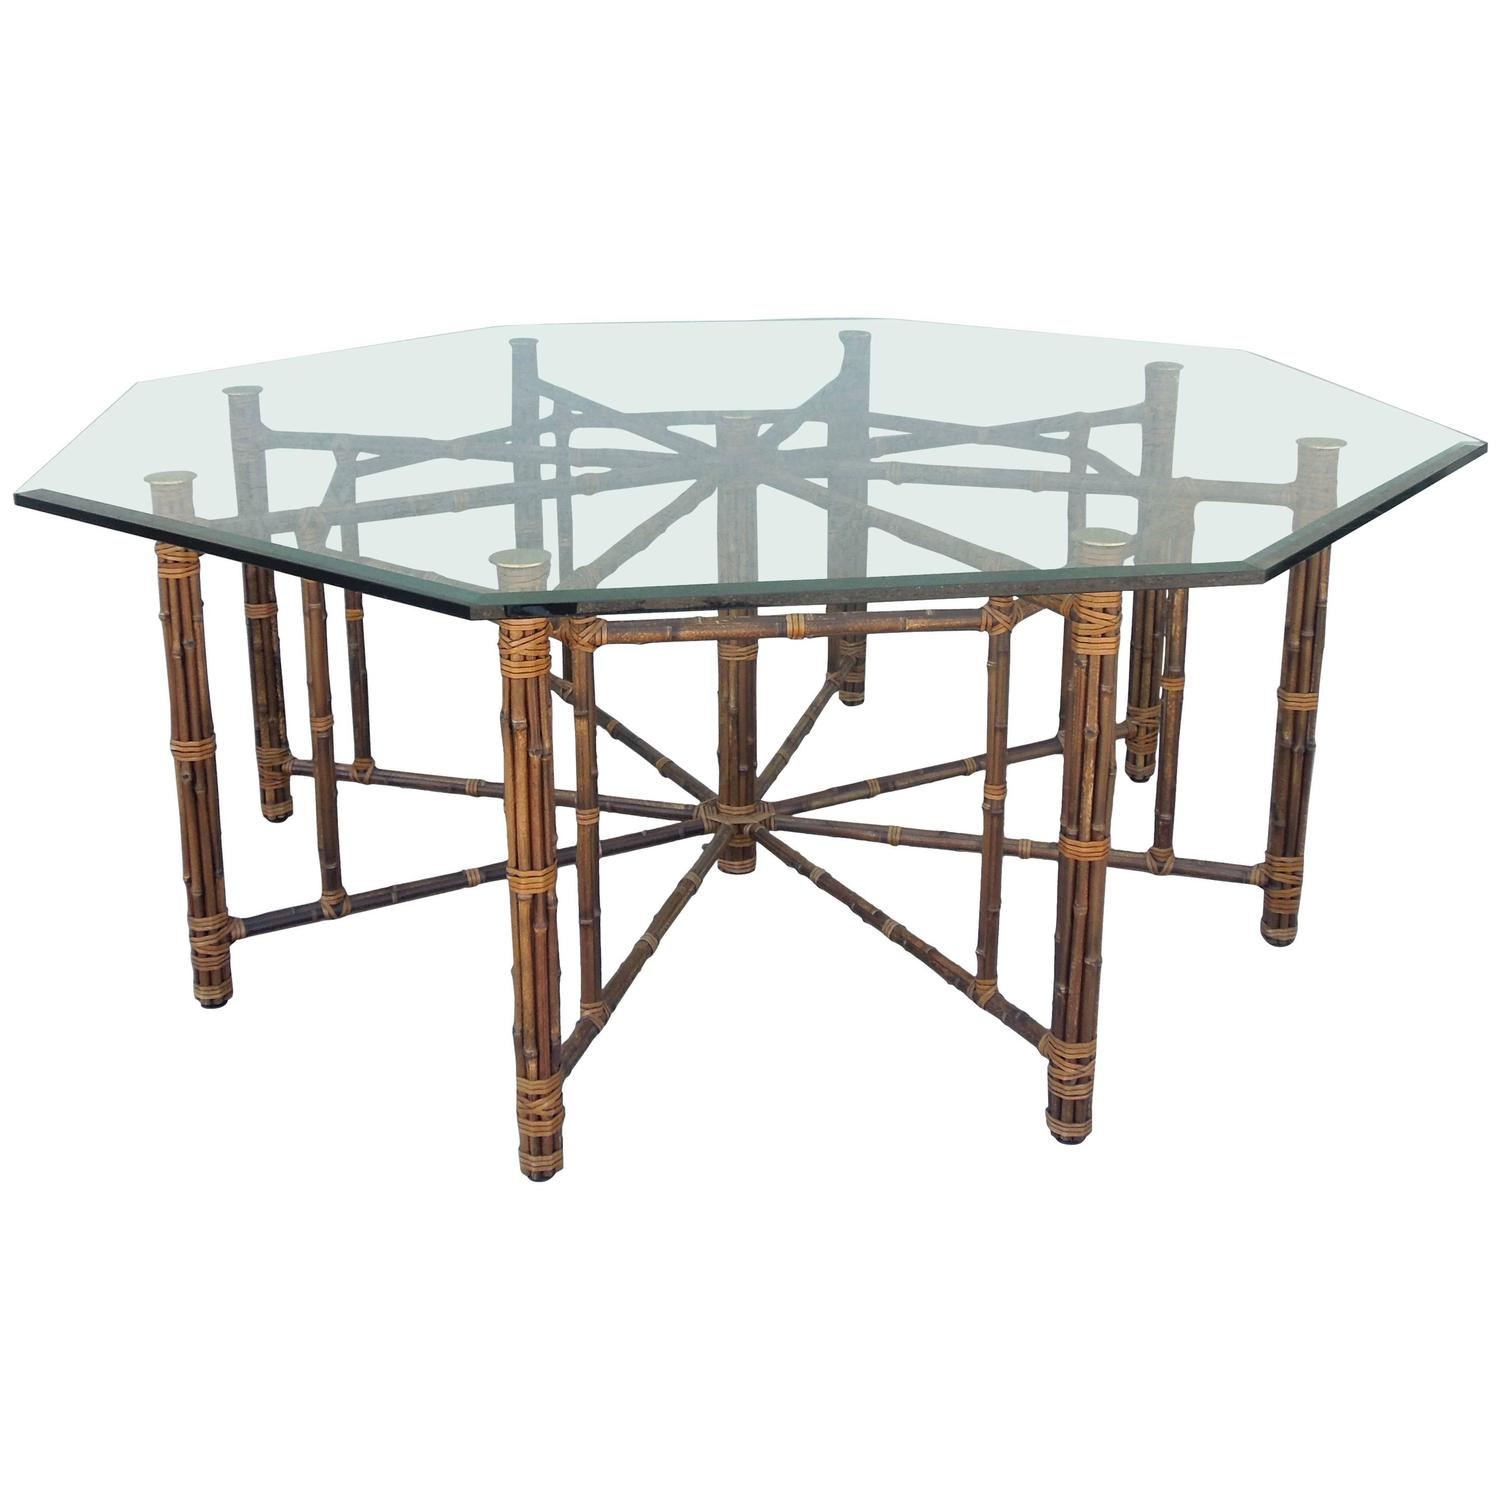 Rare Large 8 Leg Vintage Mcguire Hexagon Dining Table At